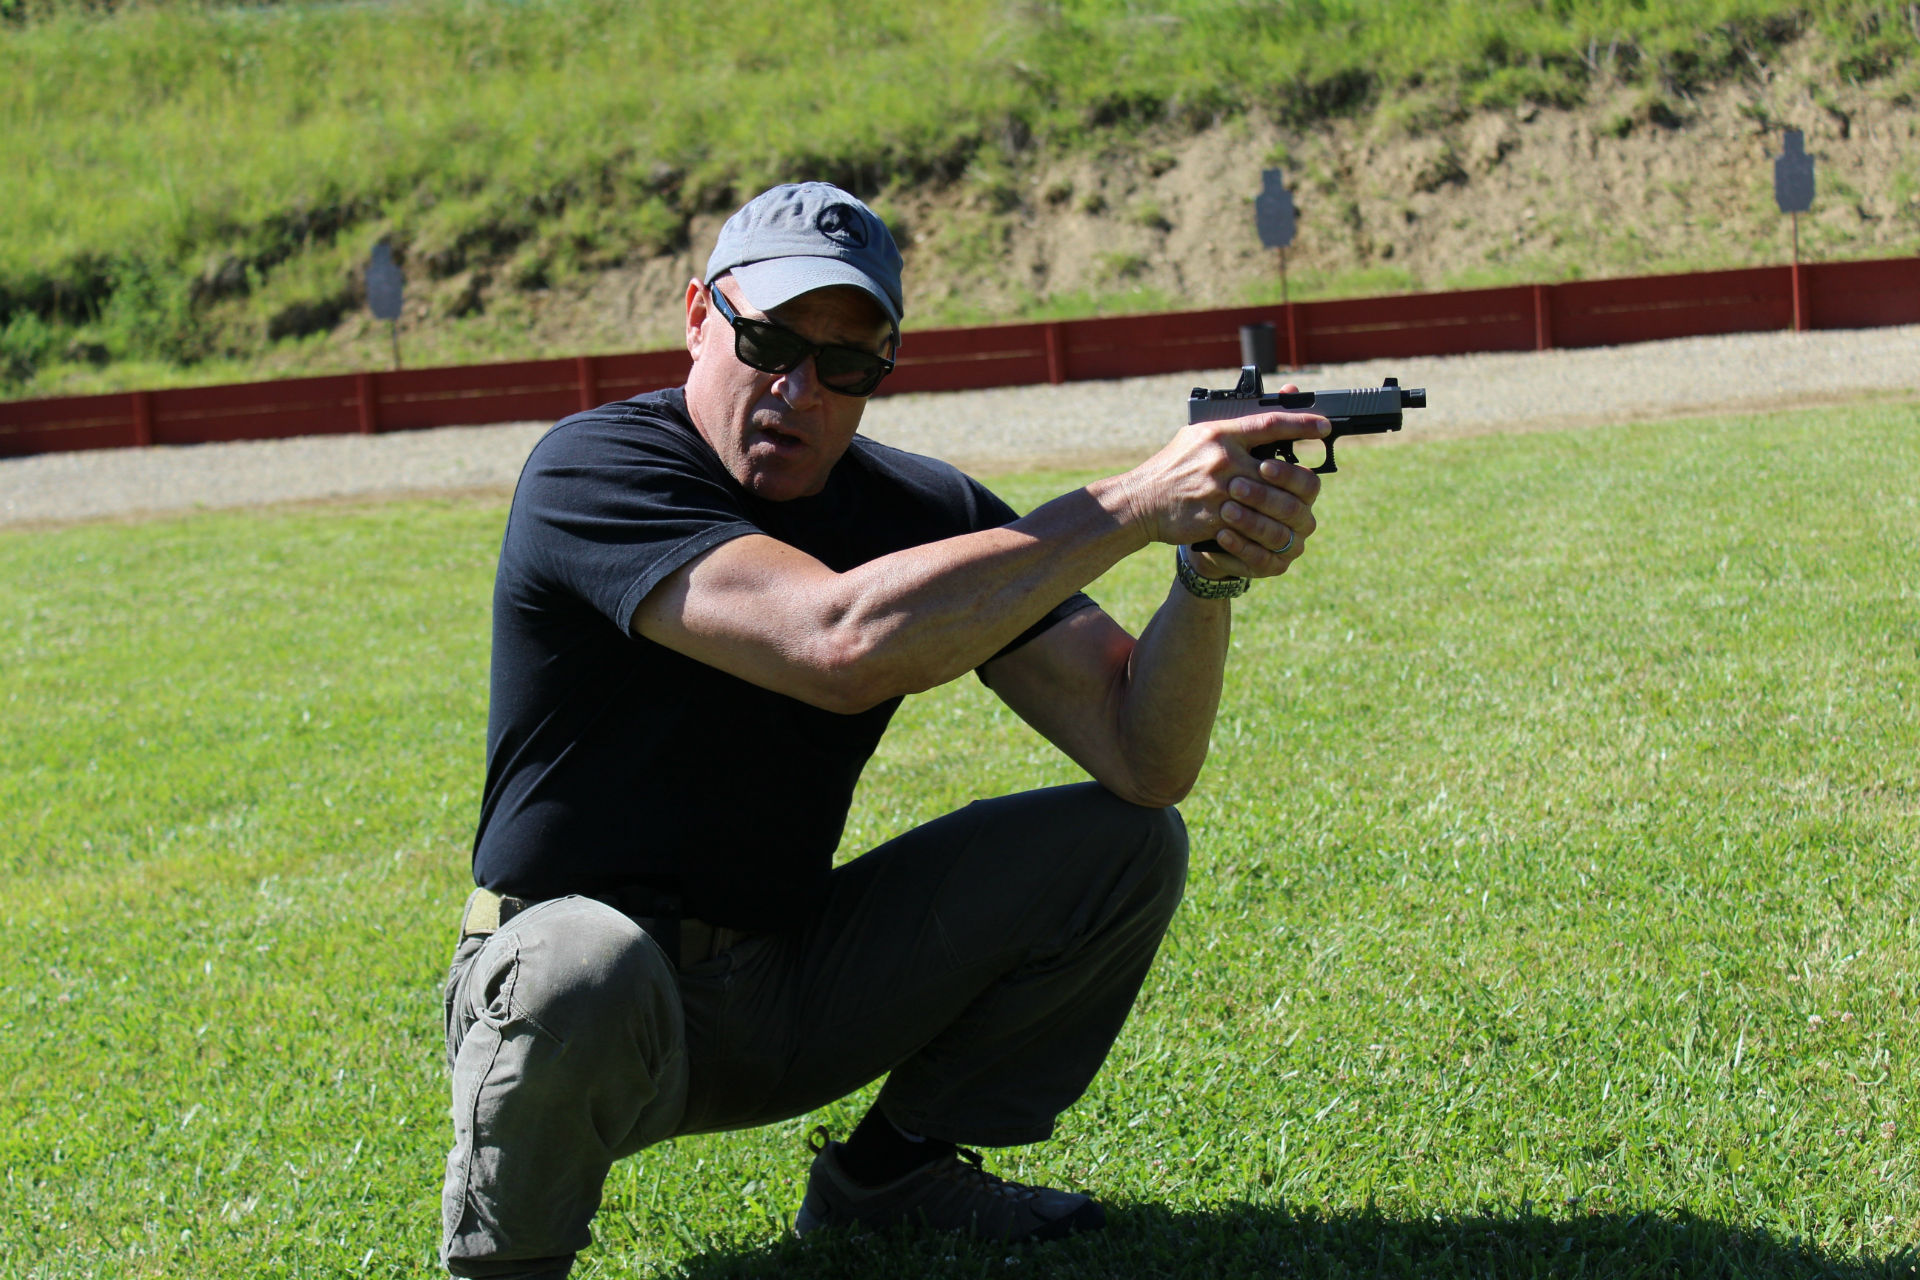 RED DOT PISTOLS TRAINING AND EQUIPMENT UPDATE - JULY 2017 - header image